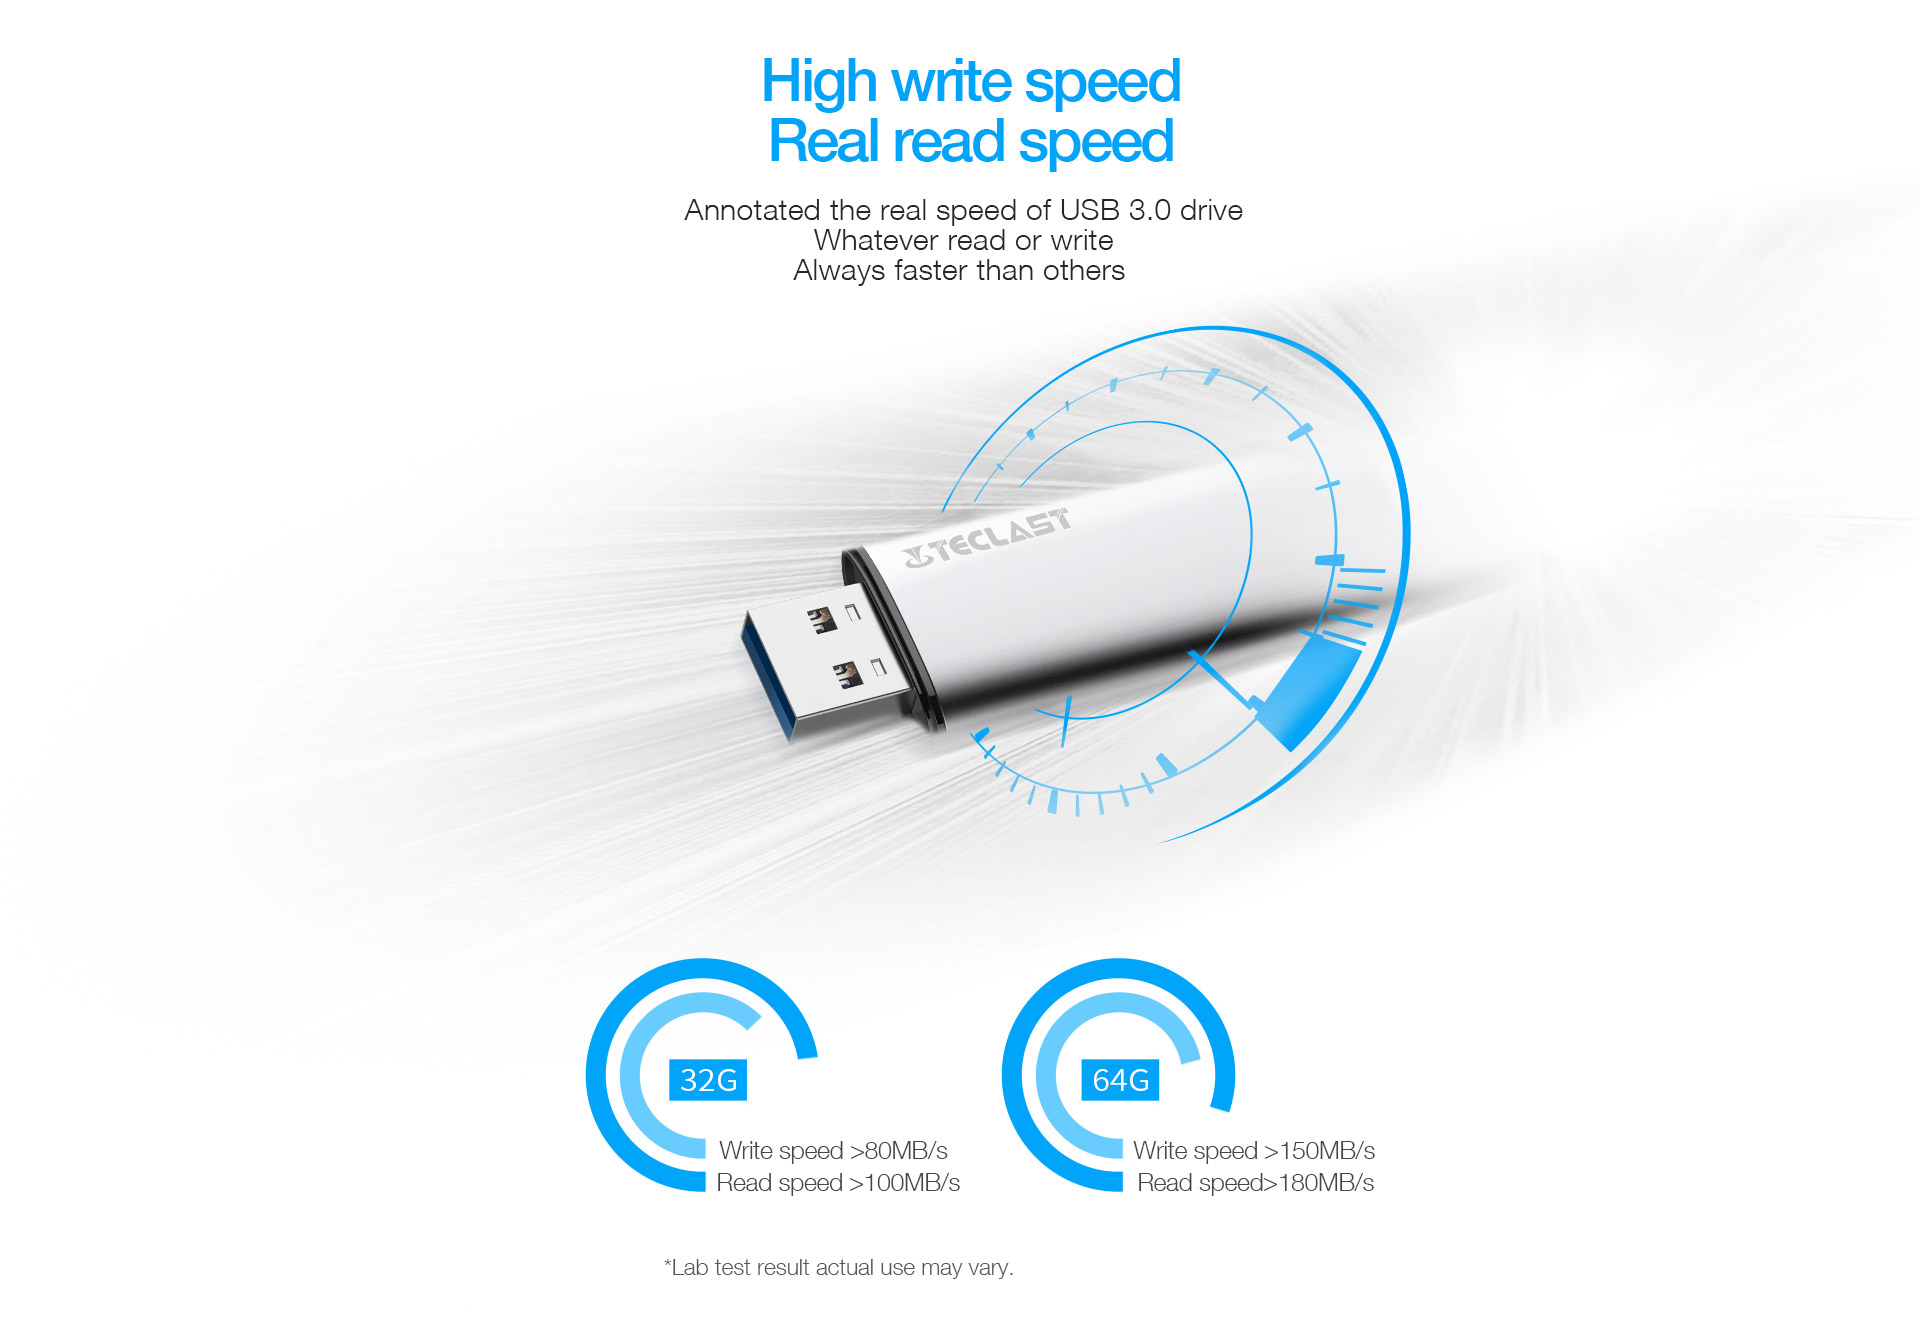 TECLAST CoolFlash XI 3.0 32/64GB USB 3.0 Pendrive USB Flash Drive USB Disk